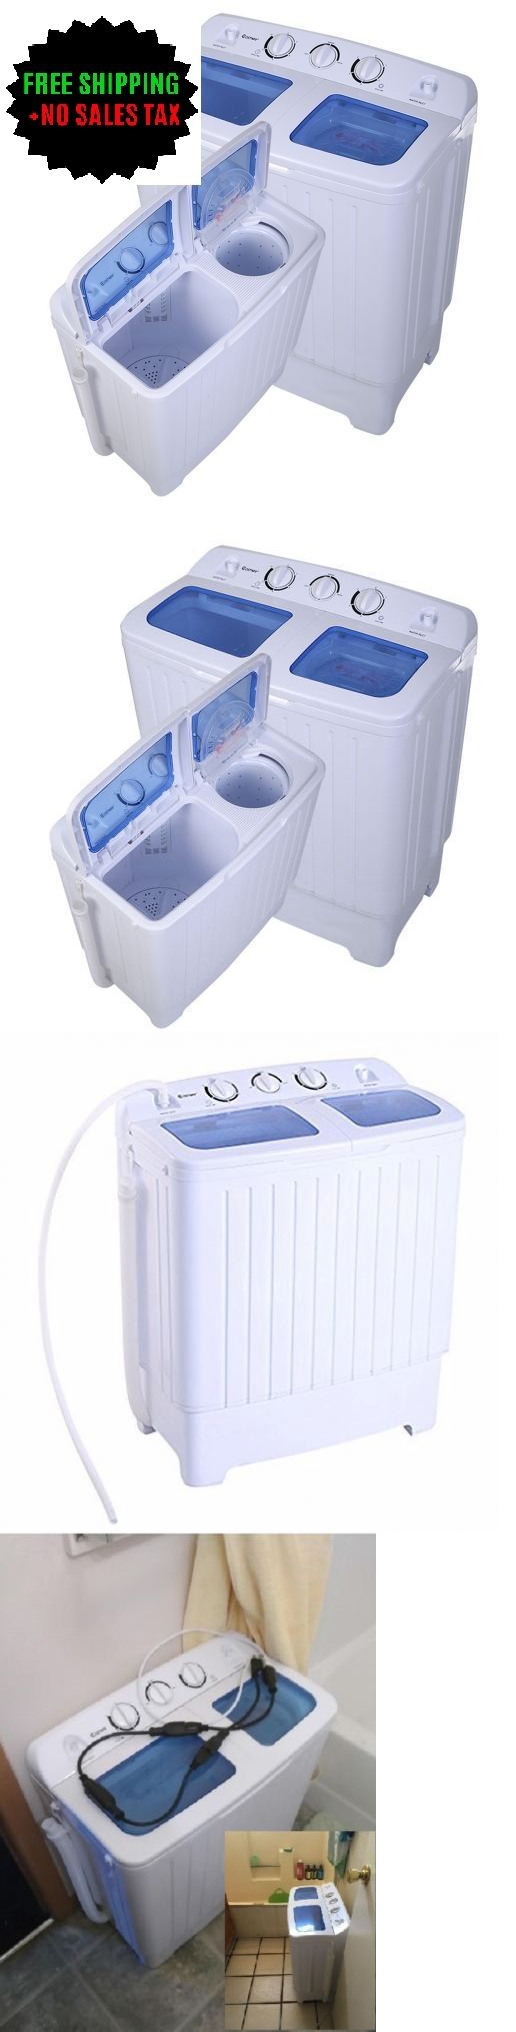 Washer And Dryer Sets Washing Machine Cleaner And Dryer